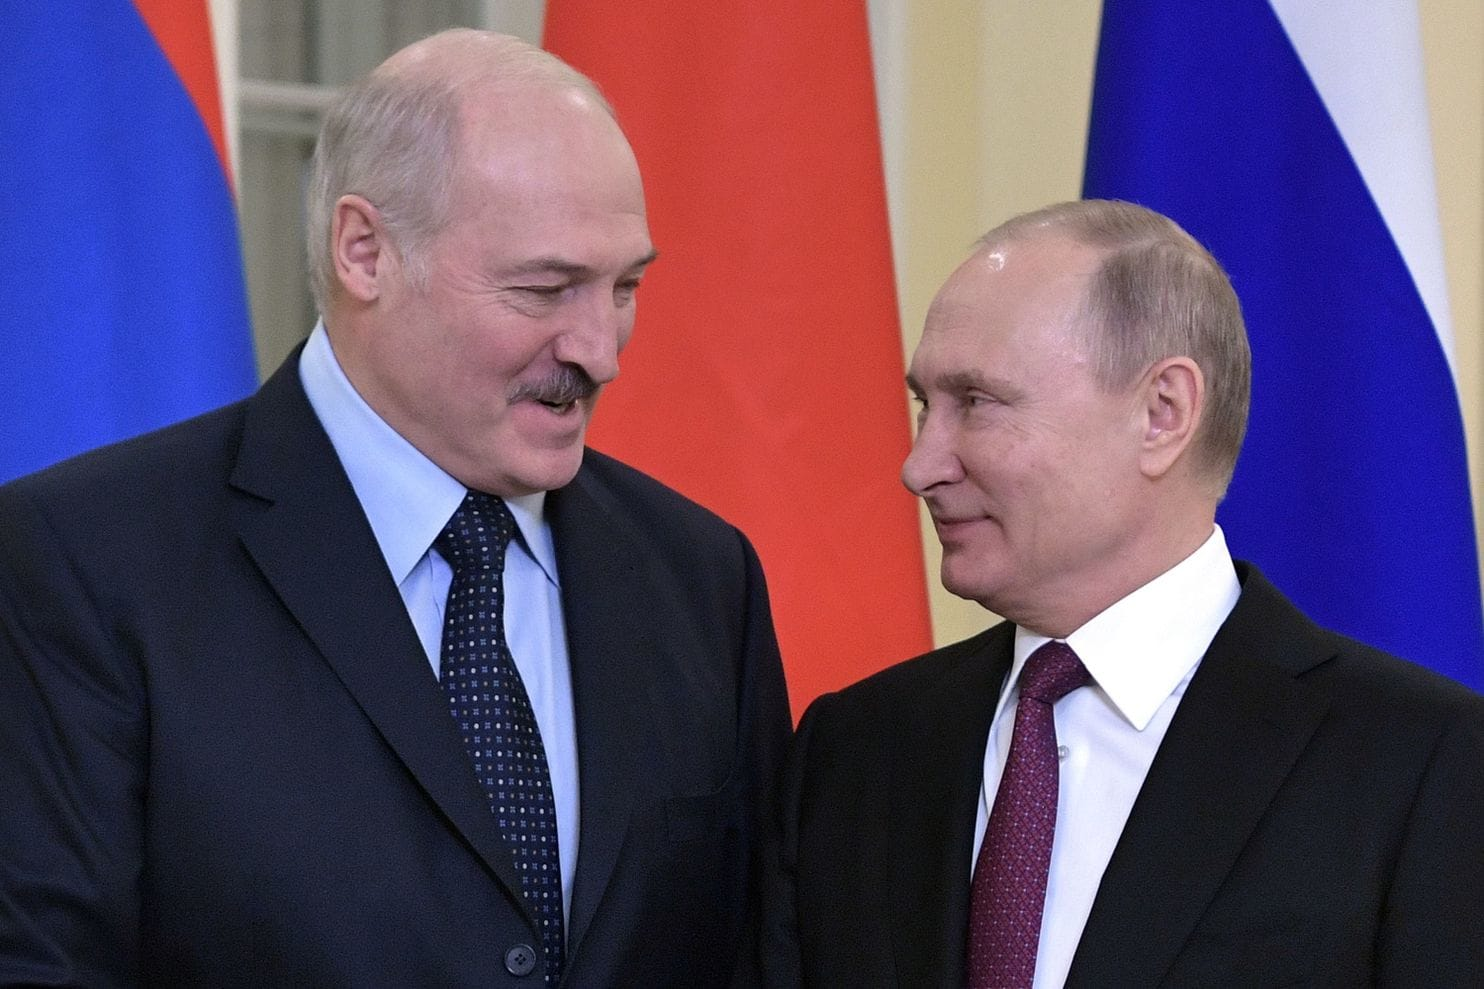 The Washington Post: Why the world should be paying attention to Putin's plans for Belarus